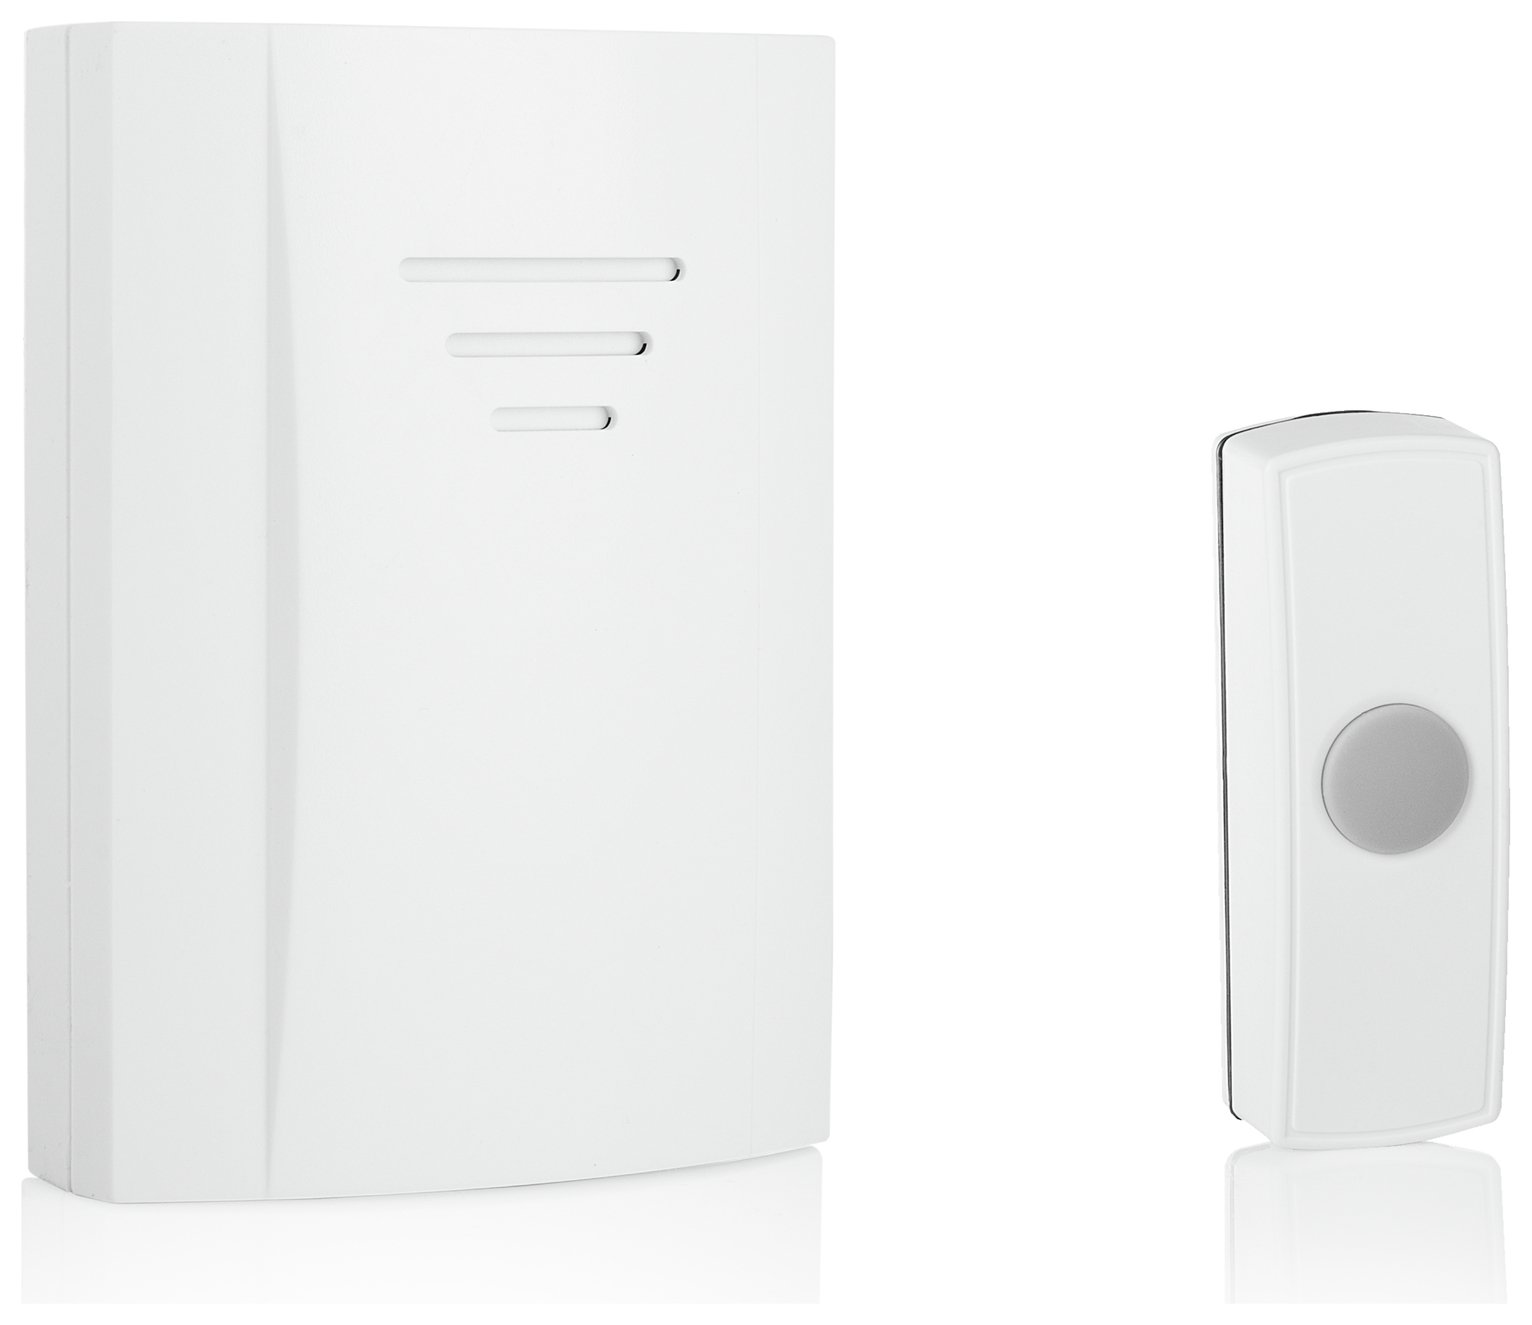 Image of Byron B304 50m Wireless Doorbell with Portable Chime